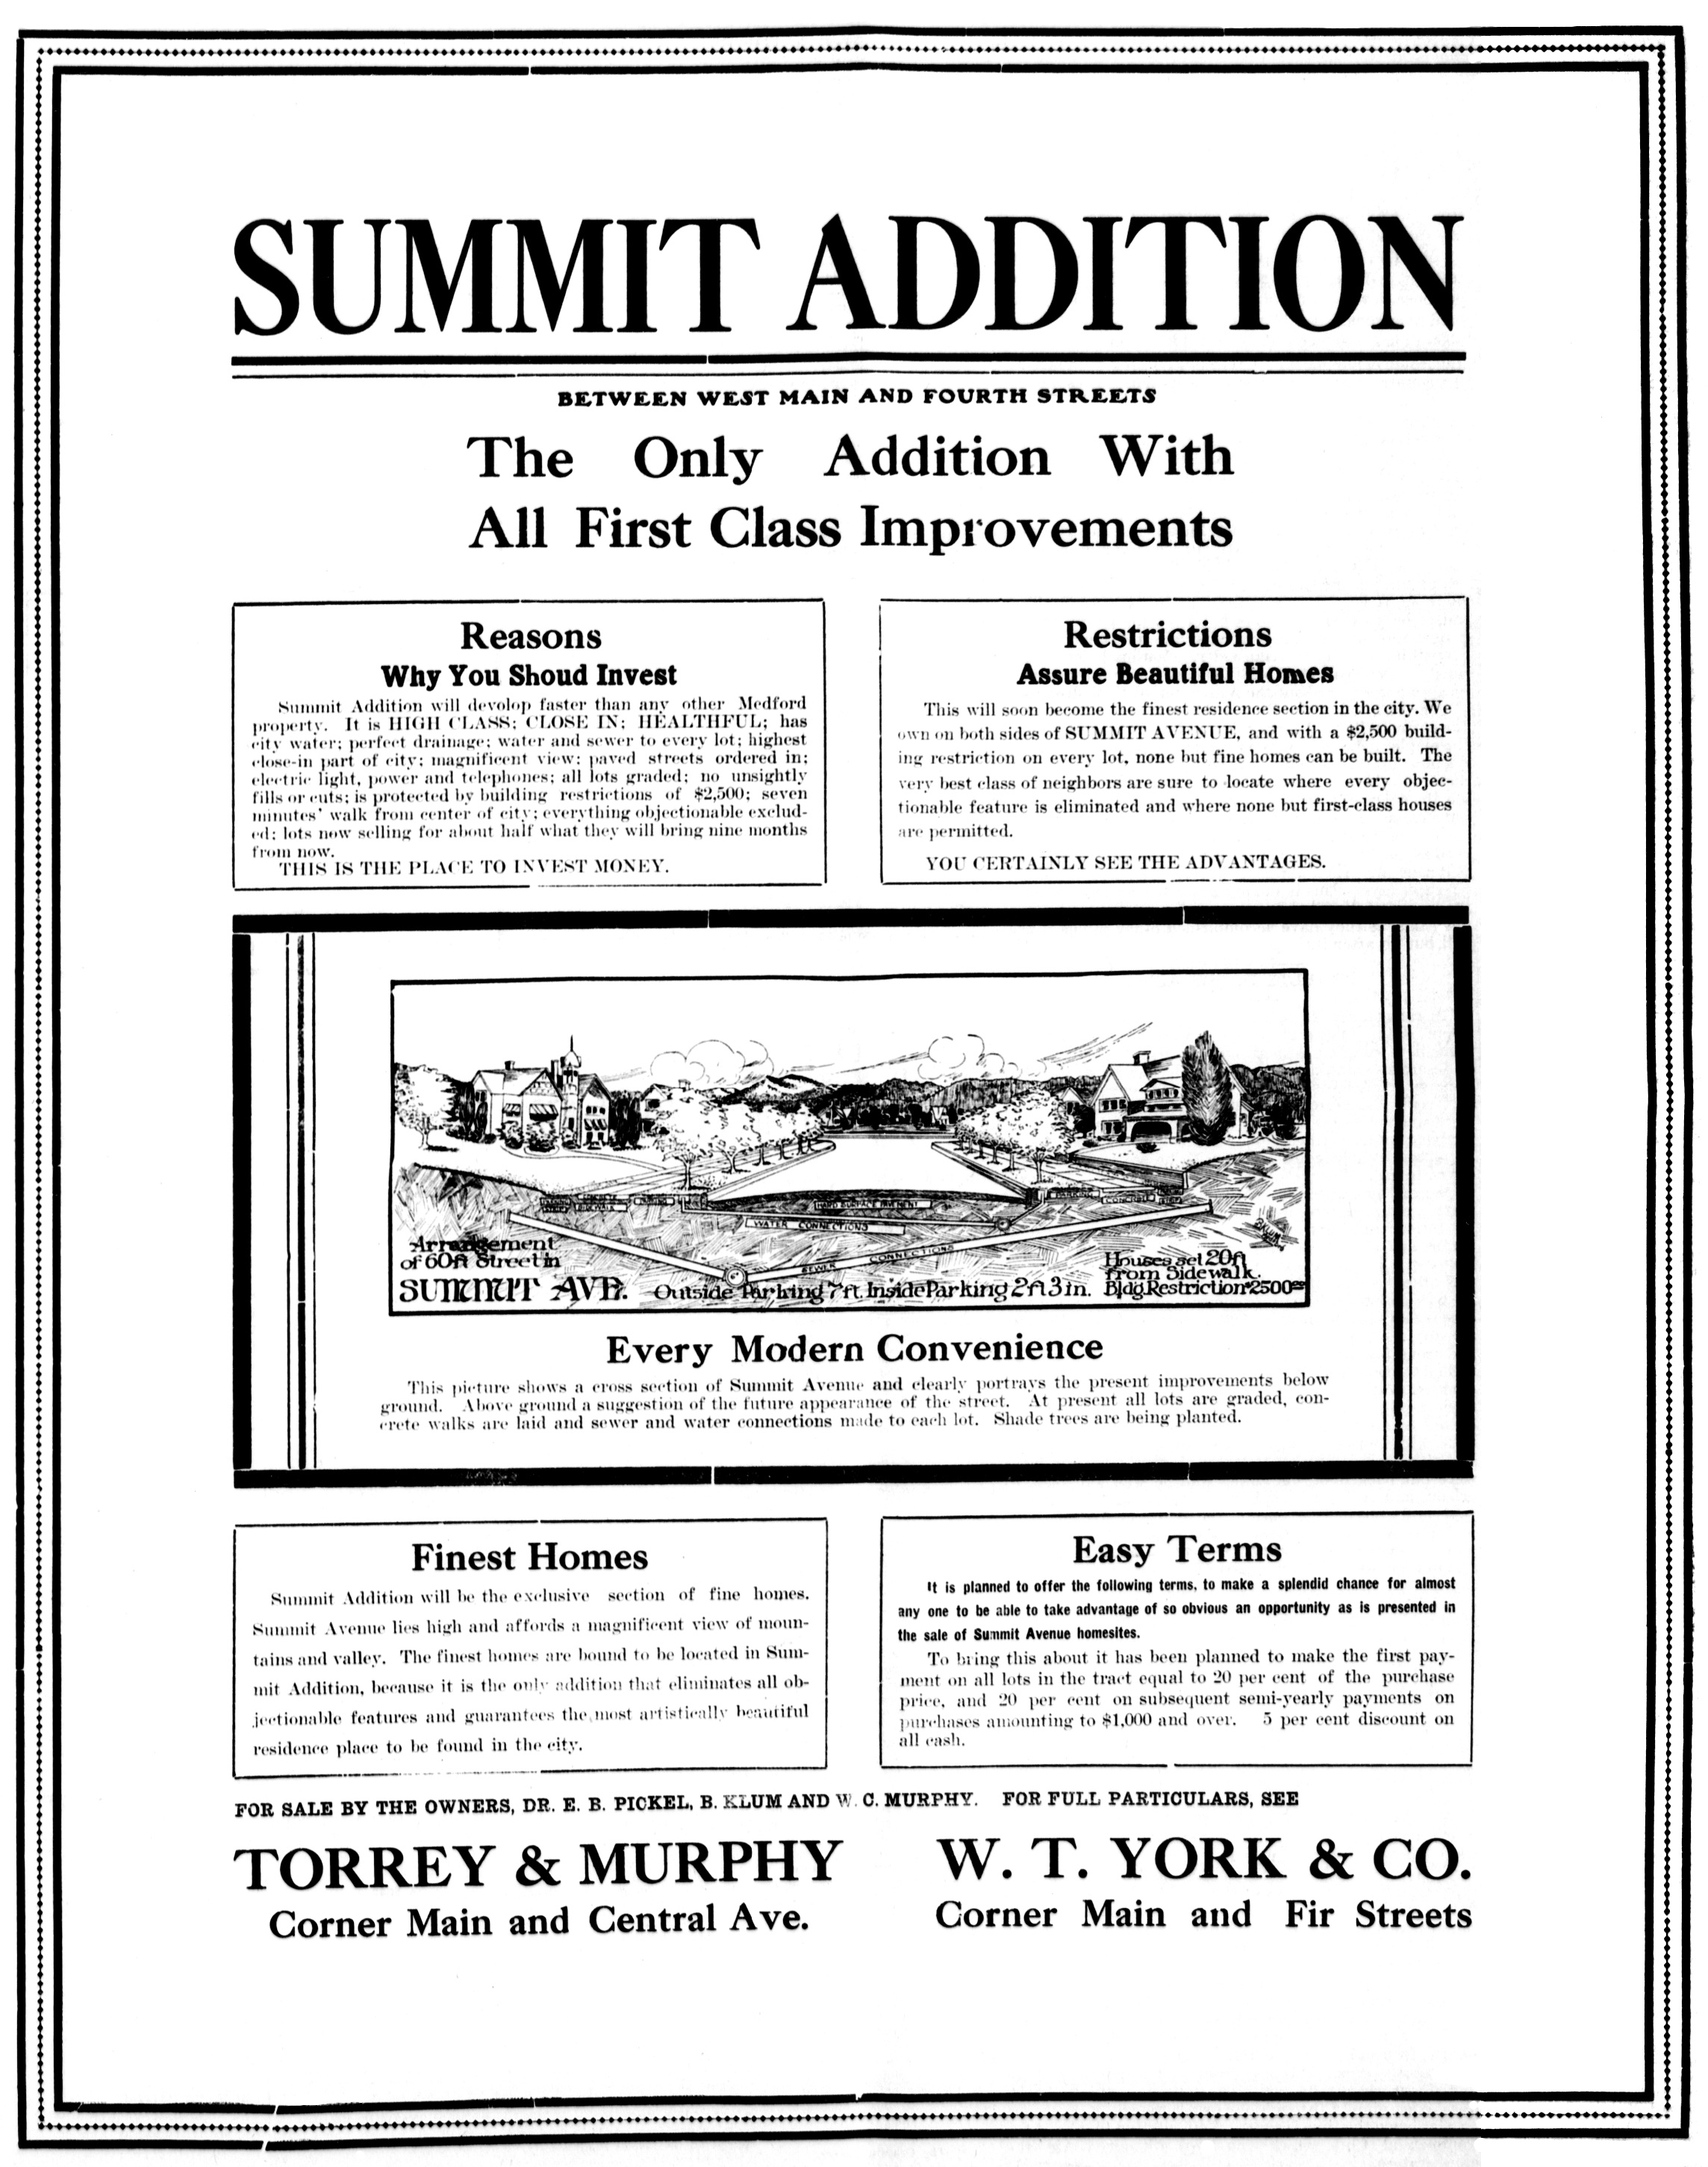 Sunset Addition ad, May 12, 1910 Medford Mail Tribune